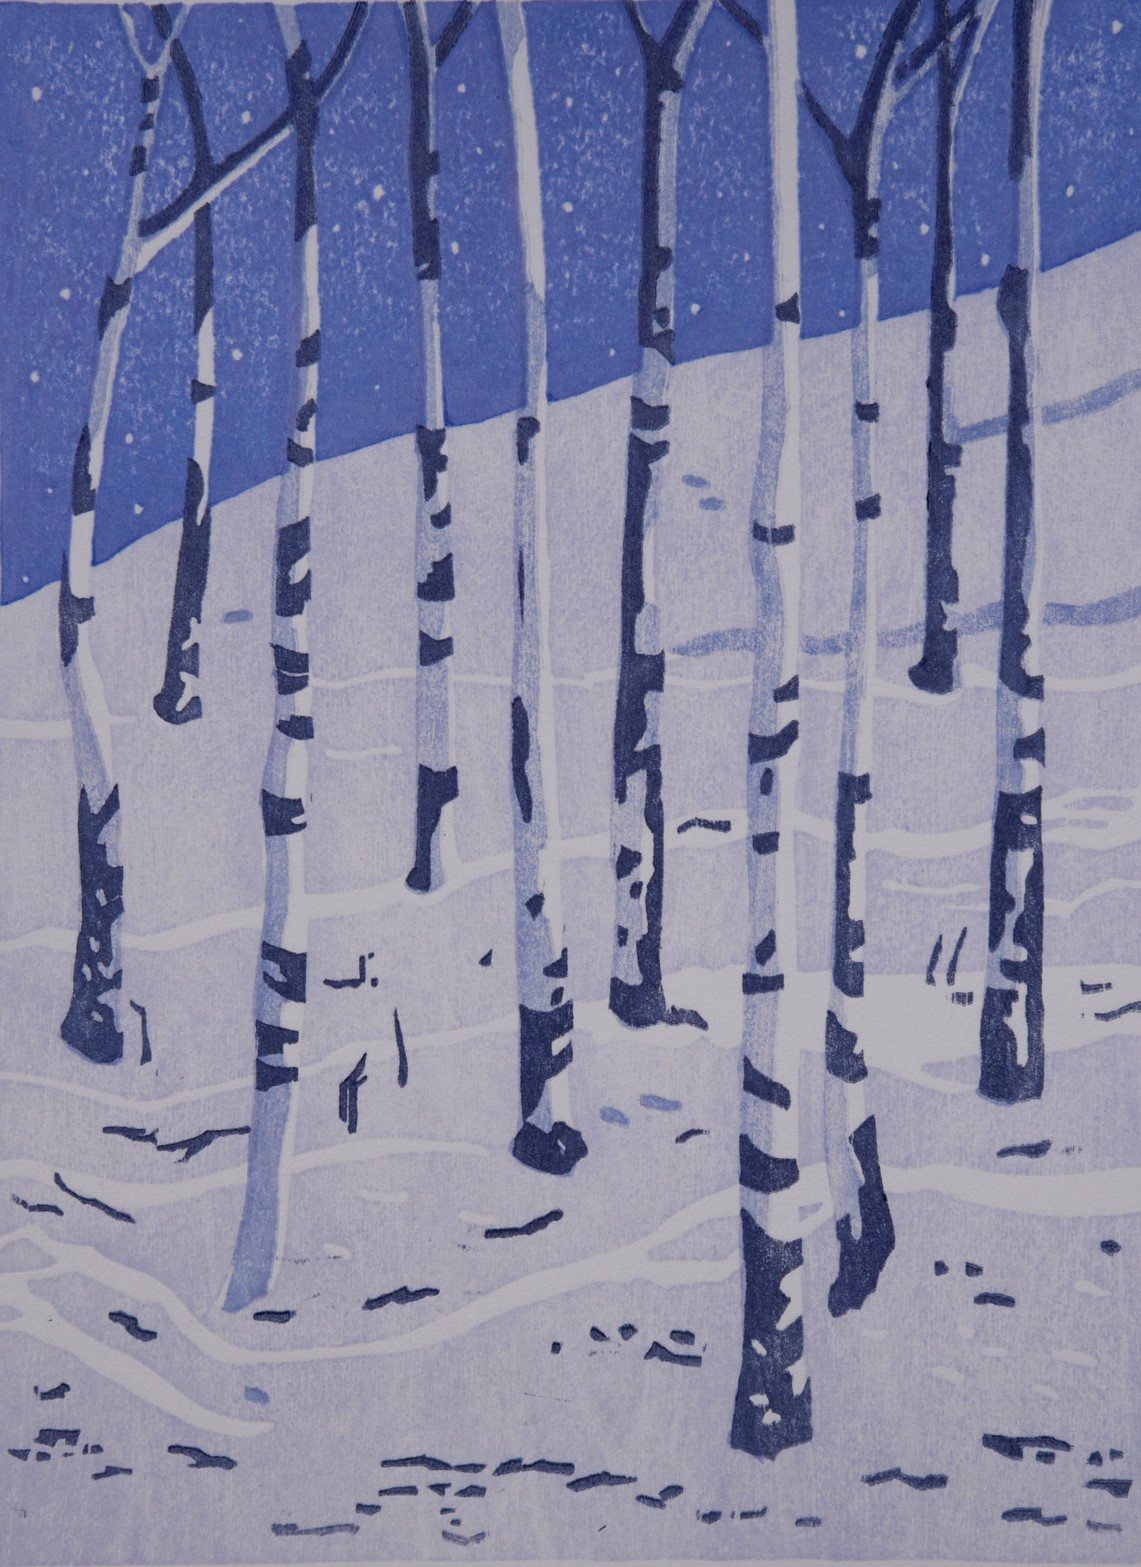 First Snow, Marcia Guetschow